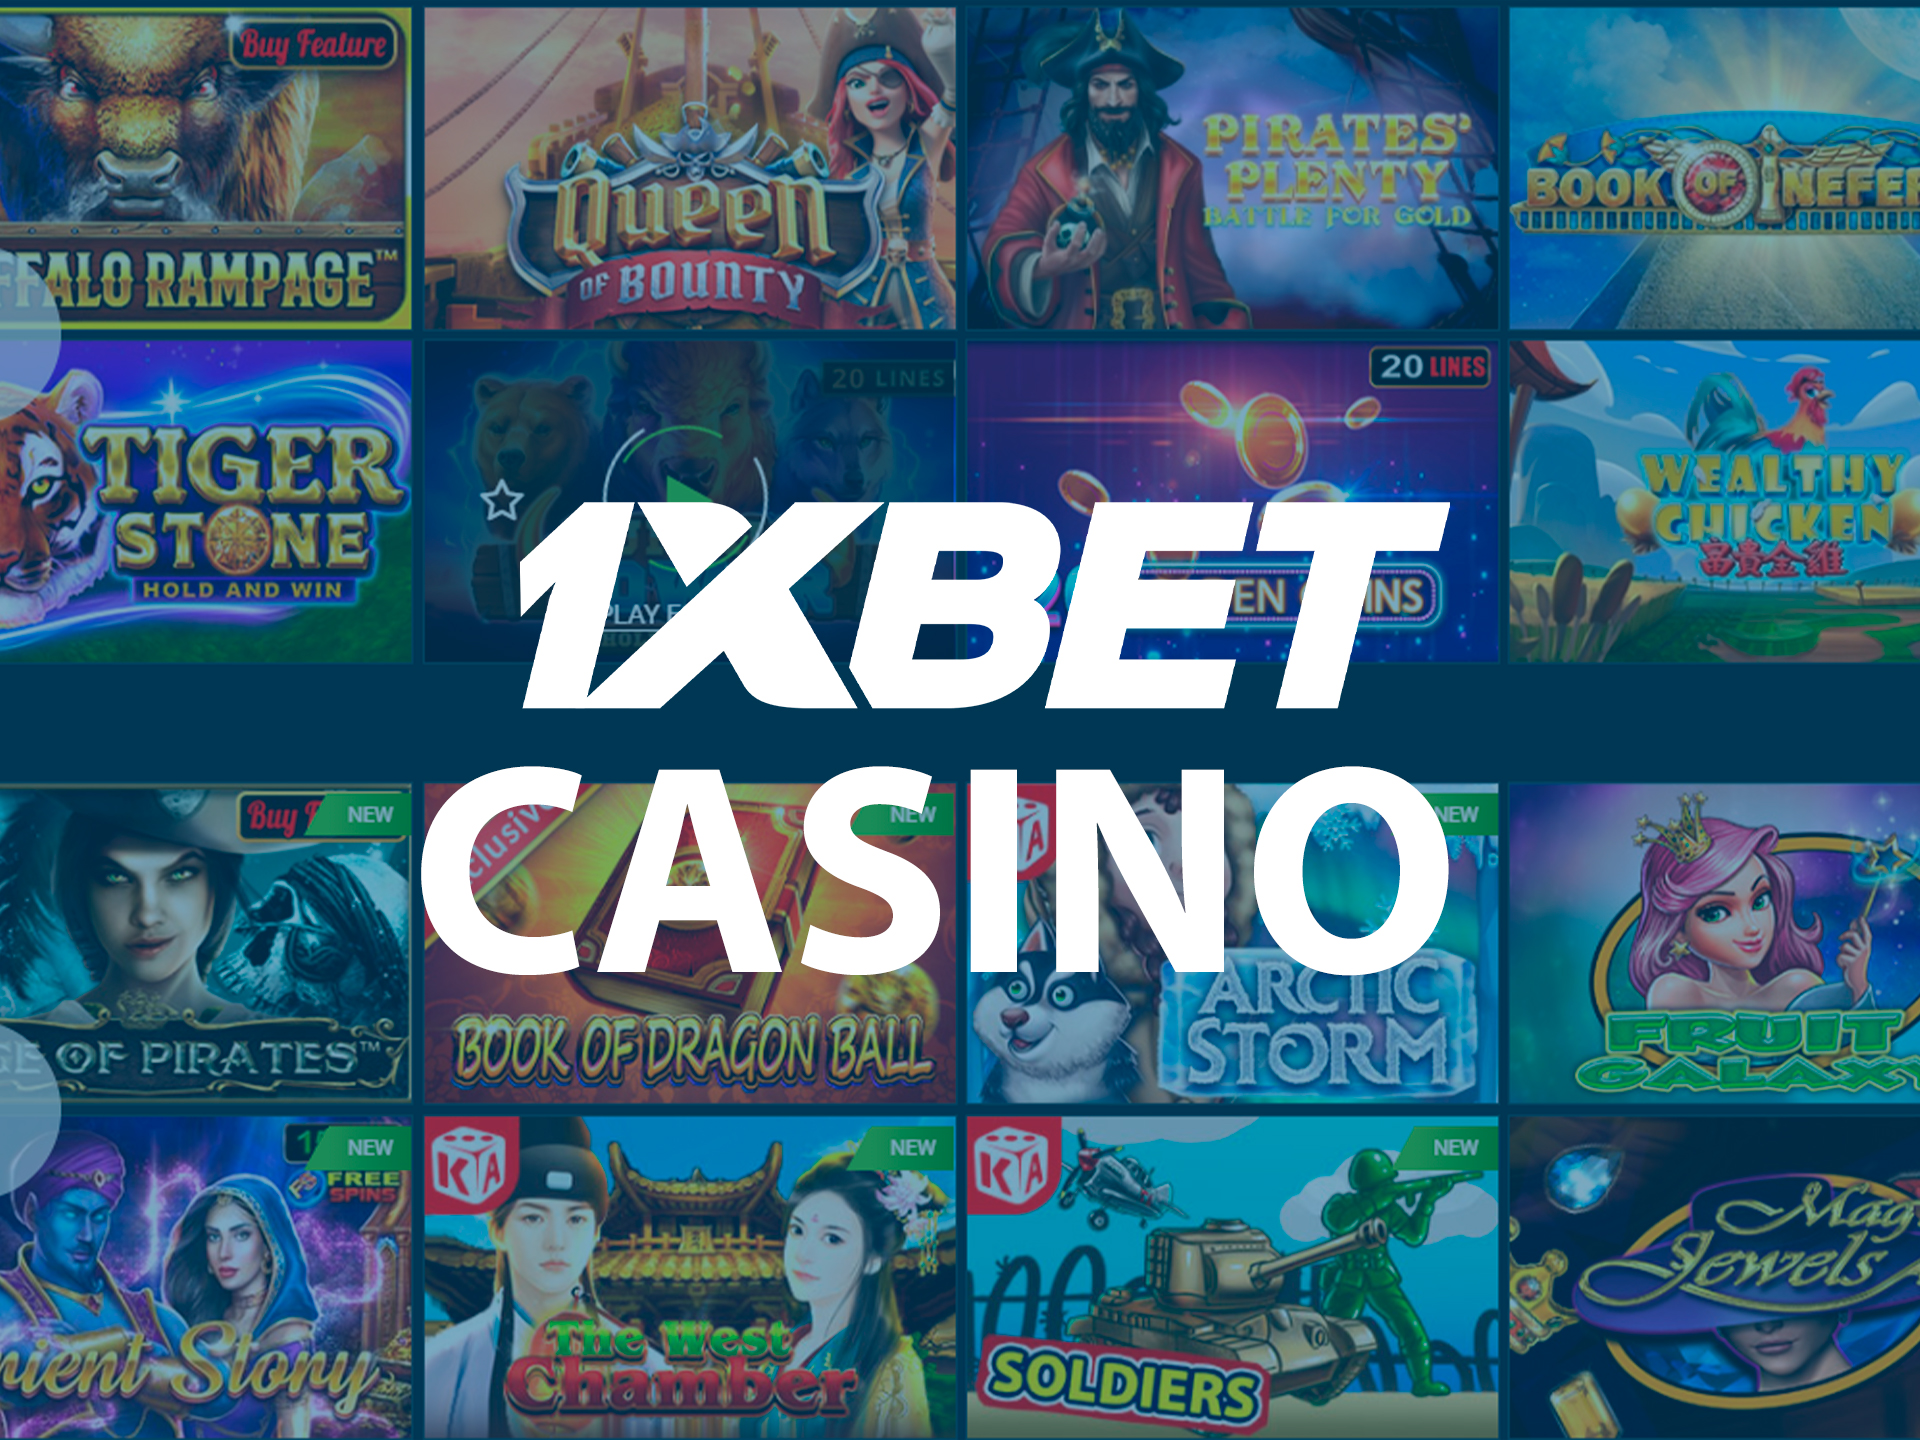 Playing at 1xBet casino in India